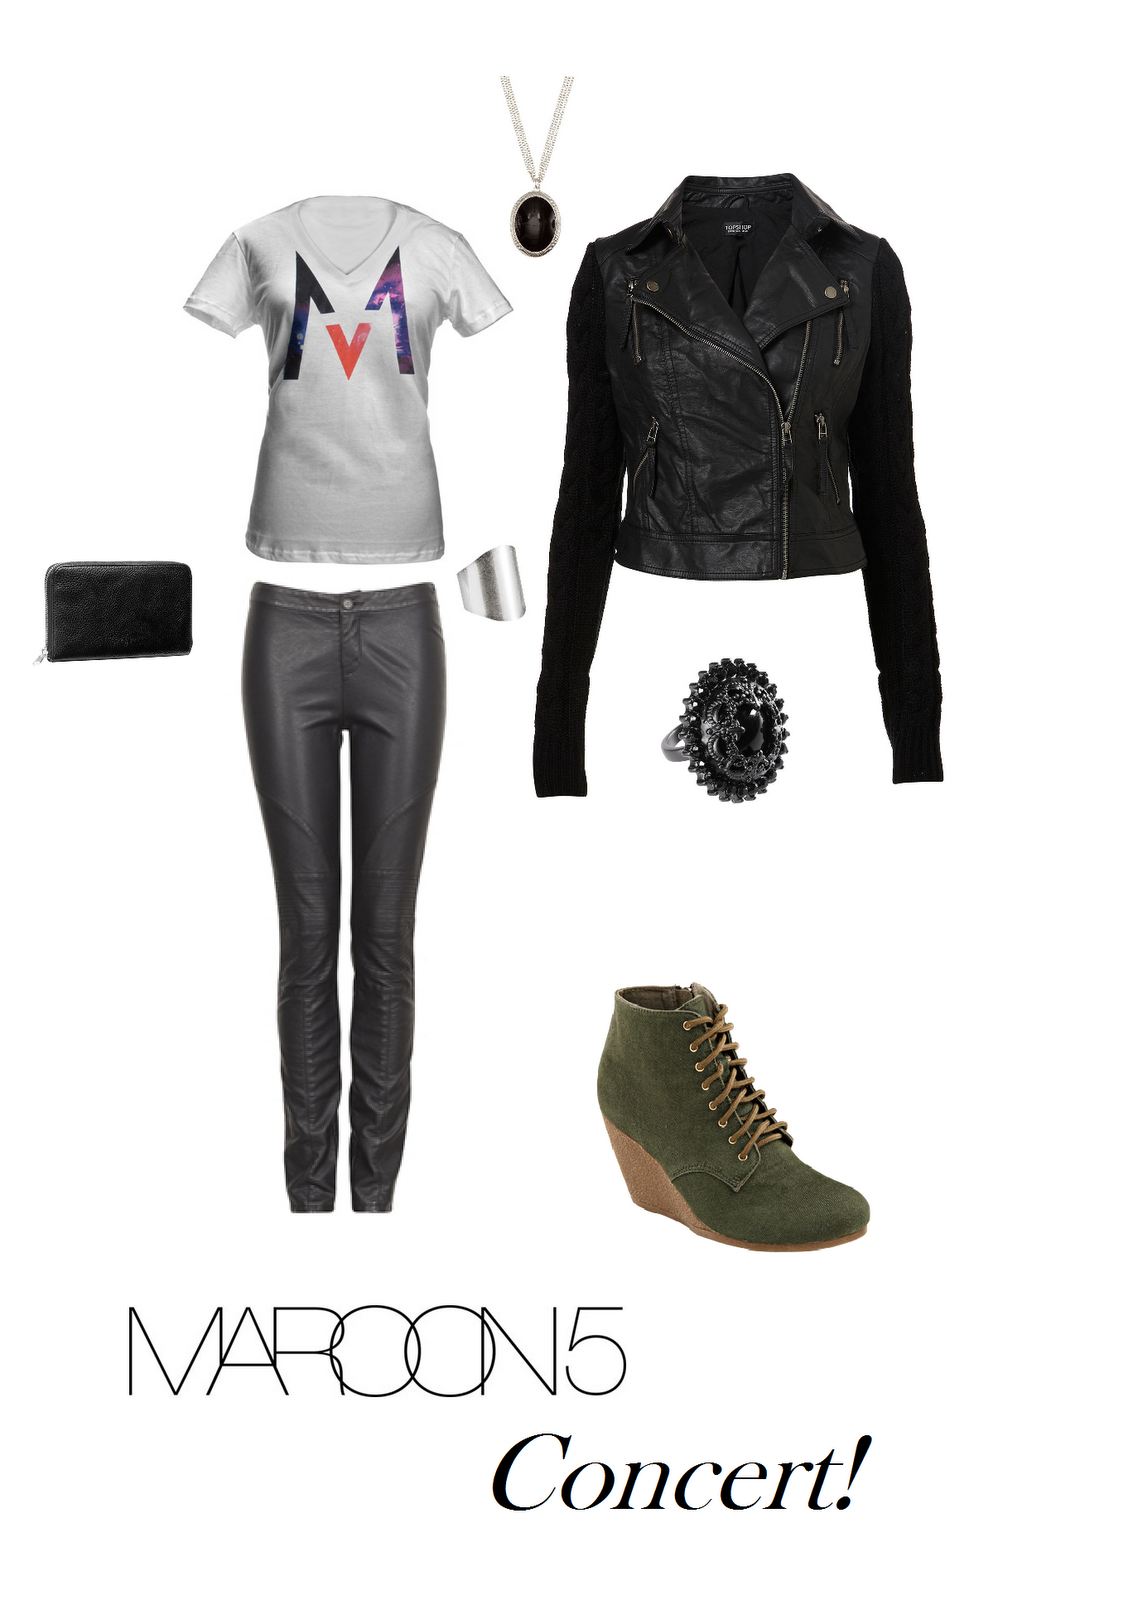 1fb08b469b3 That Different Style  Dream Outfit! - Maroon5 Concert